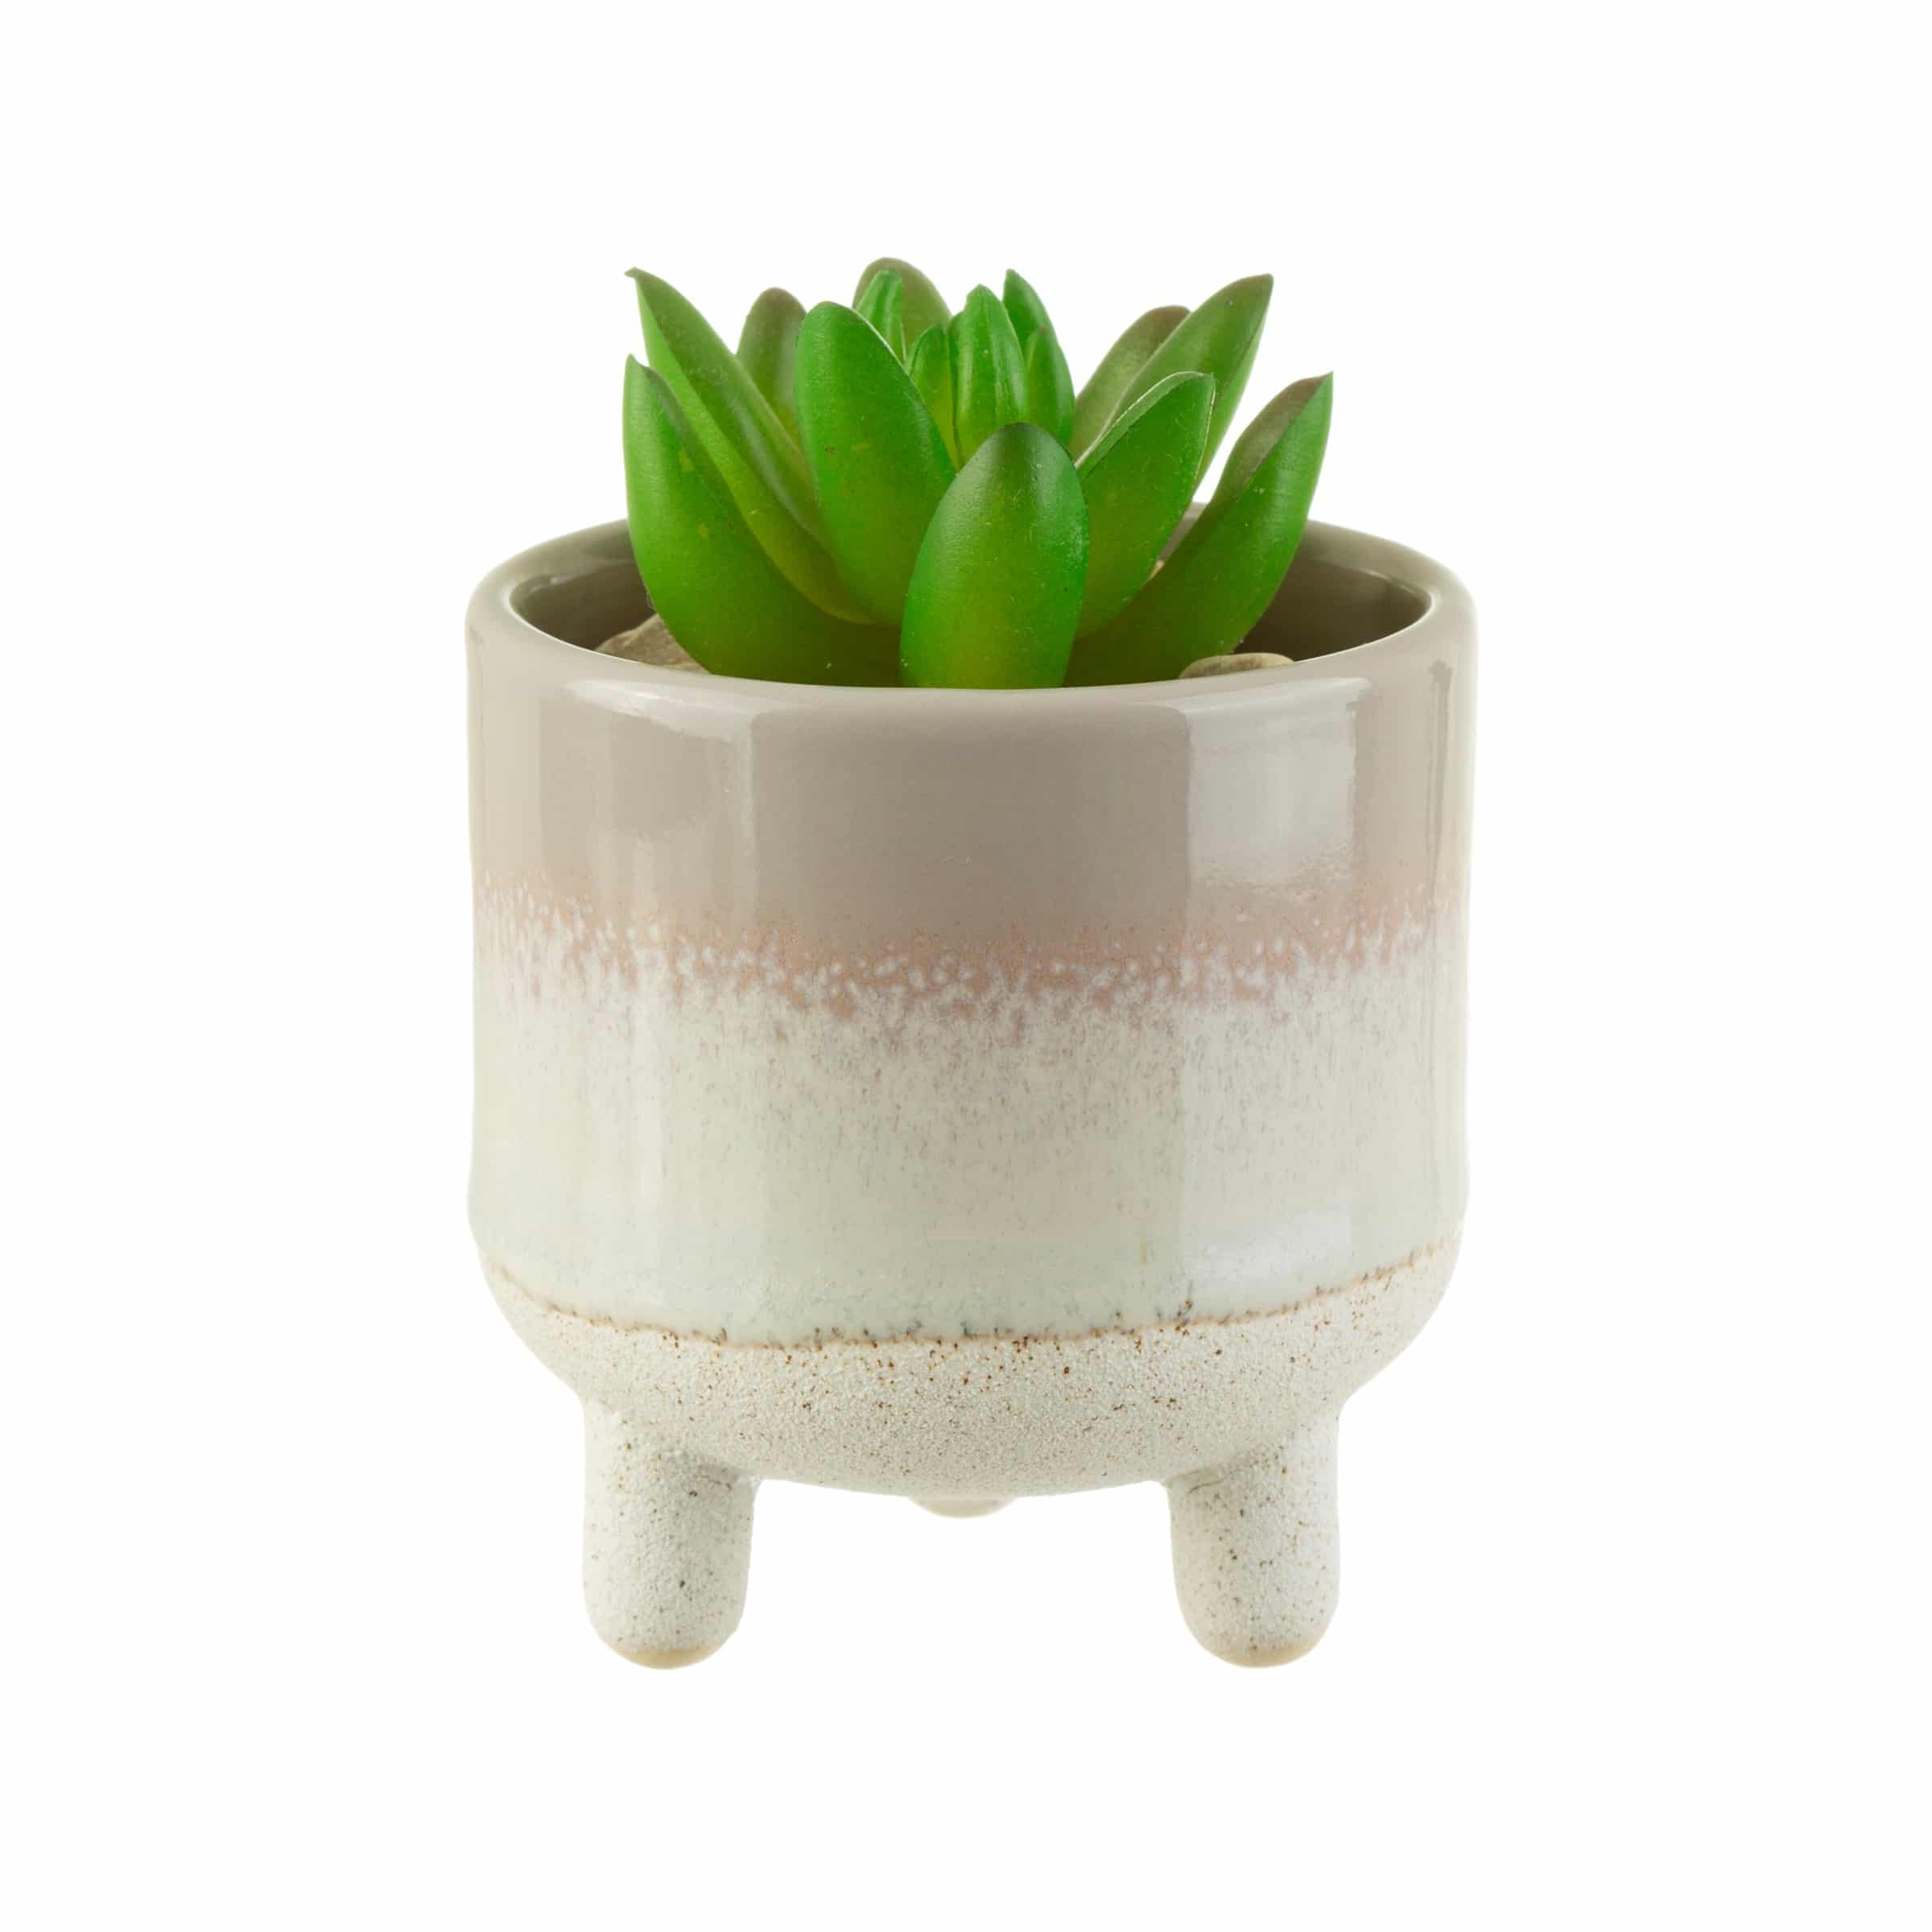 Bohemian Grey Planter on Legs with plant